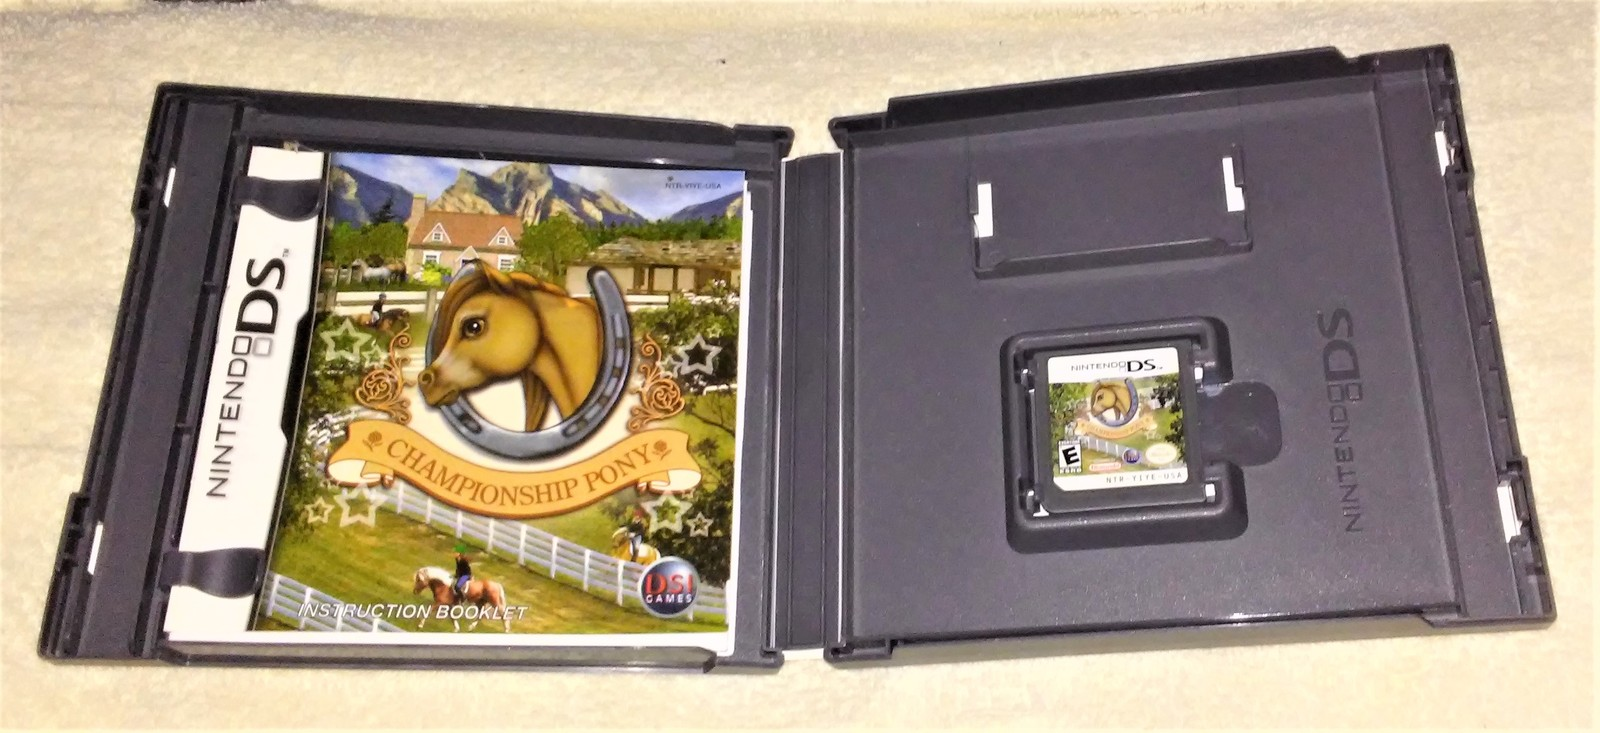 Nintendo DS CHAMPIONSHIP PONY Video Game in case with Instructions from 2007 image 3